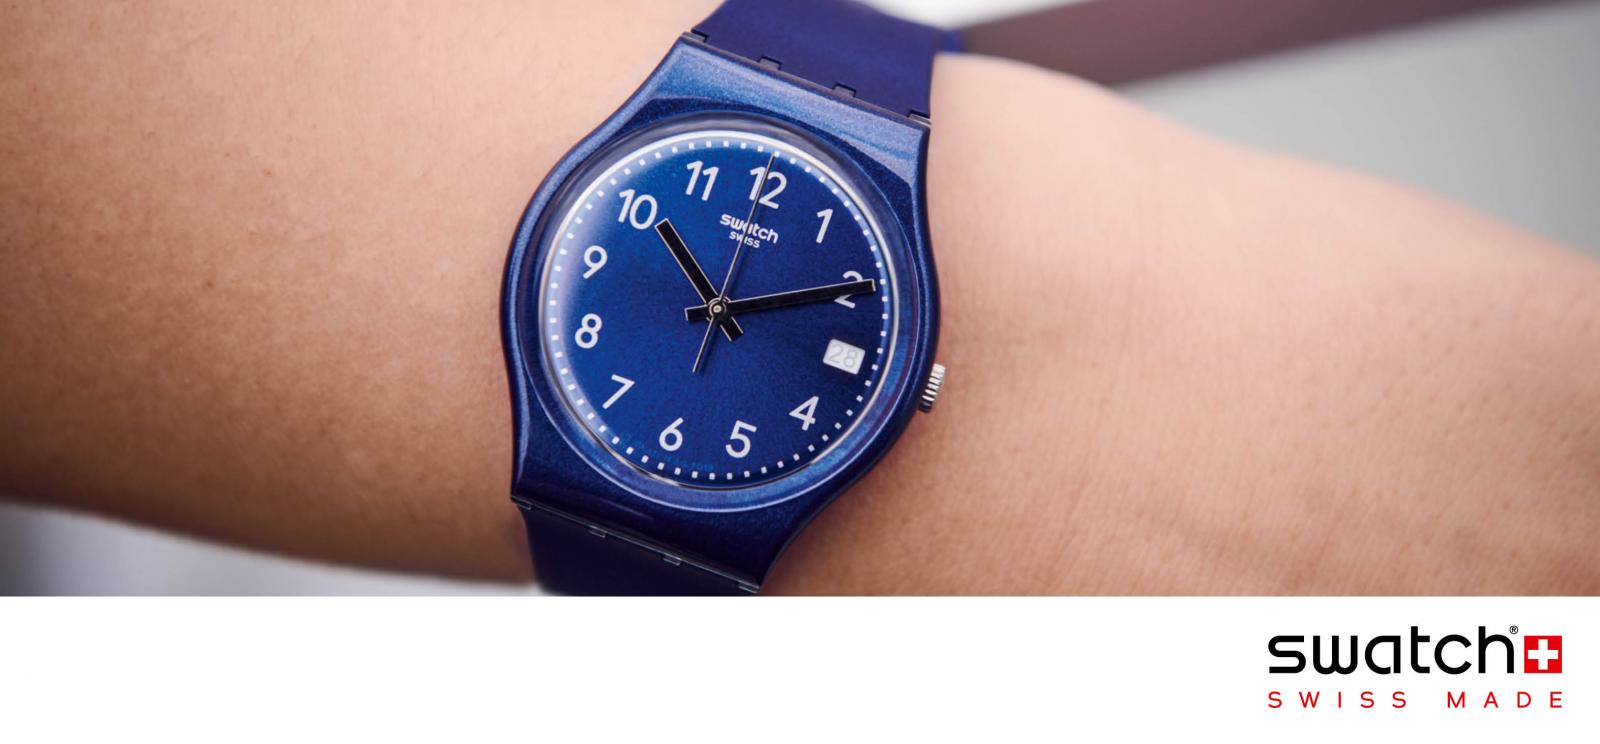 <h1>Swatch Time To Swatch horloges</h1>